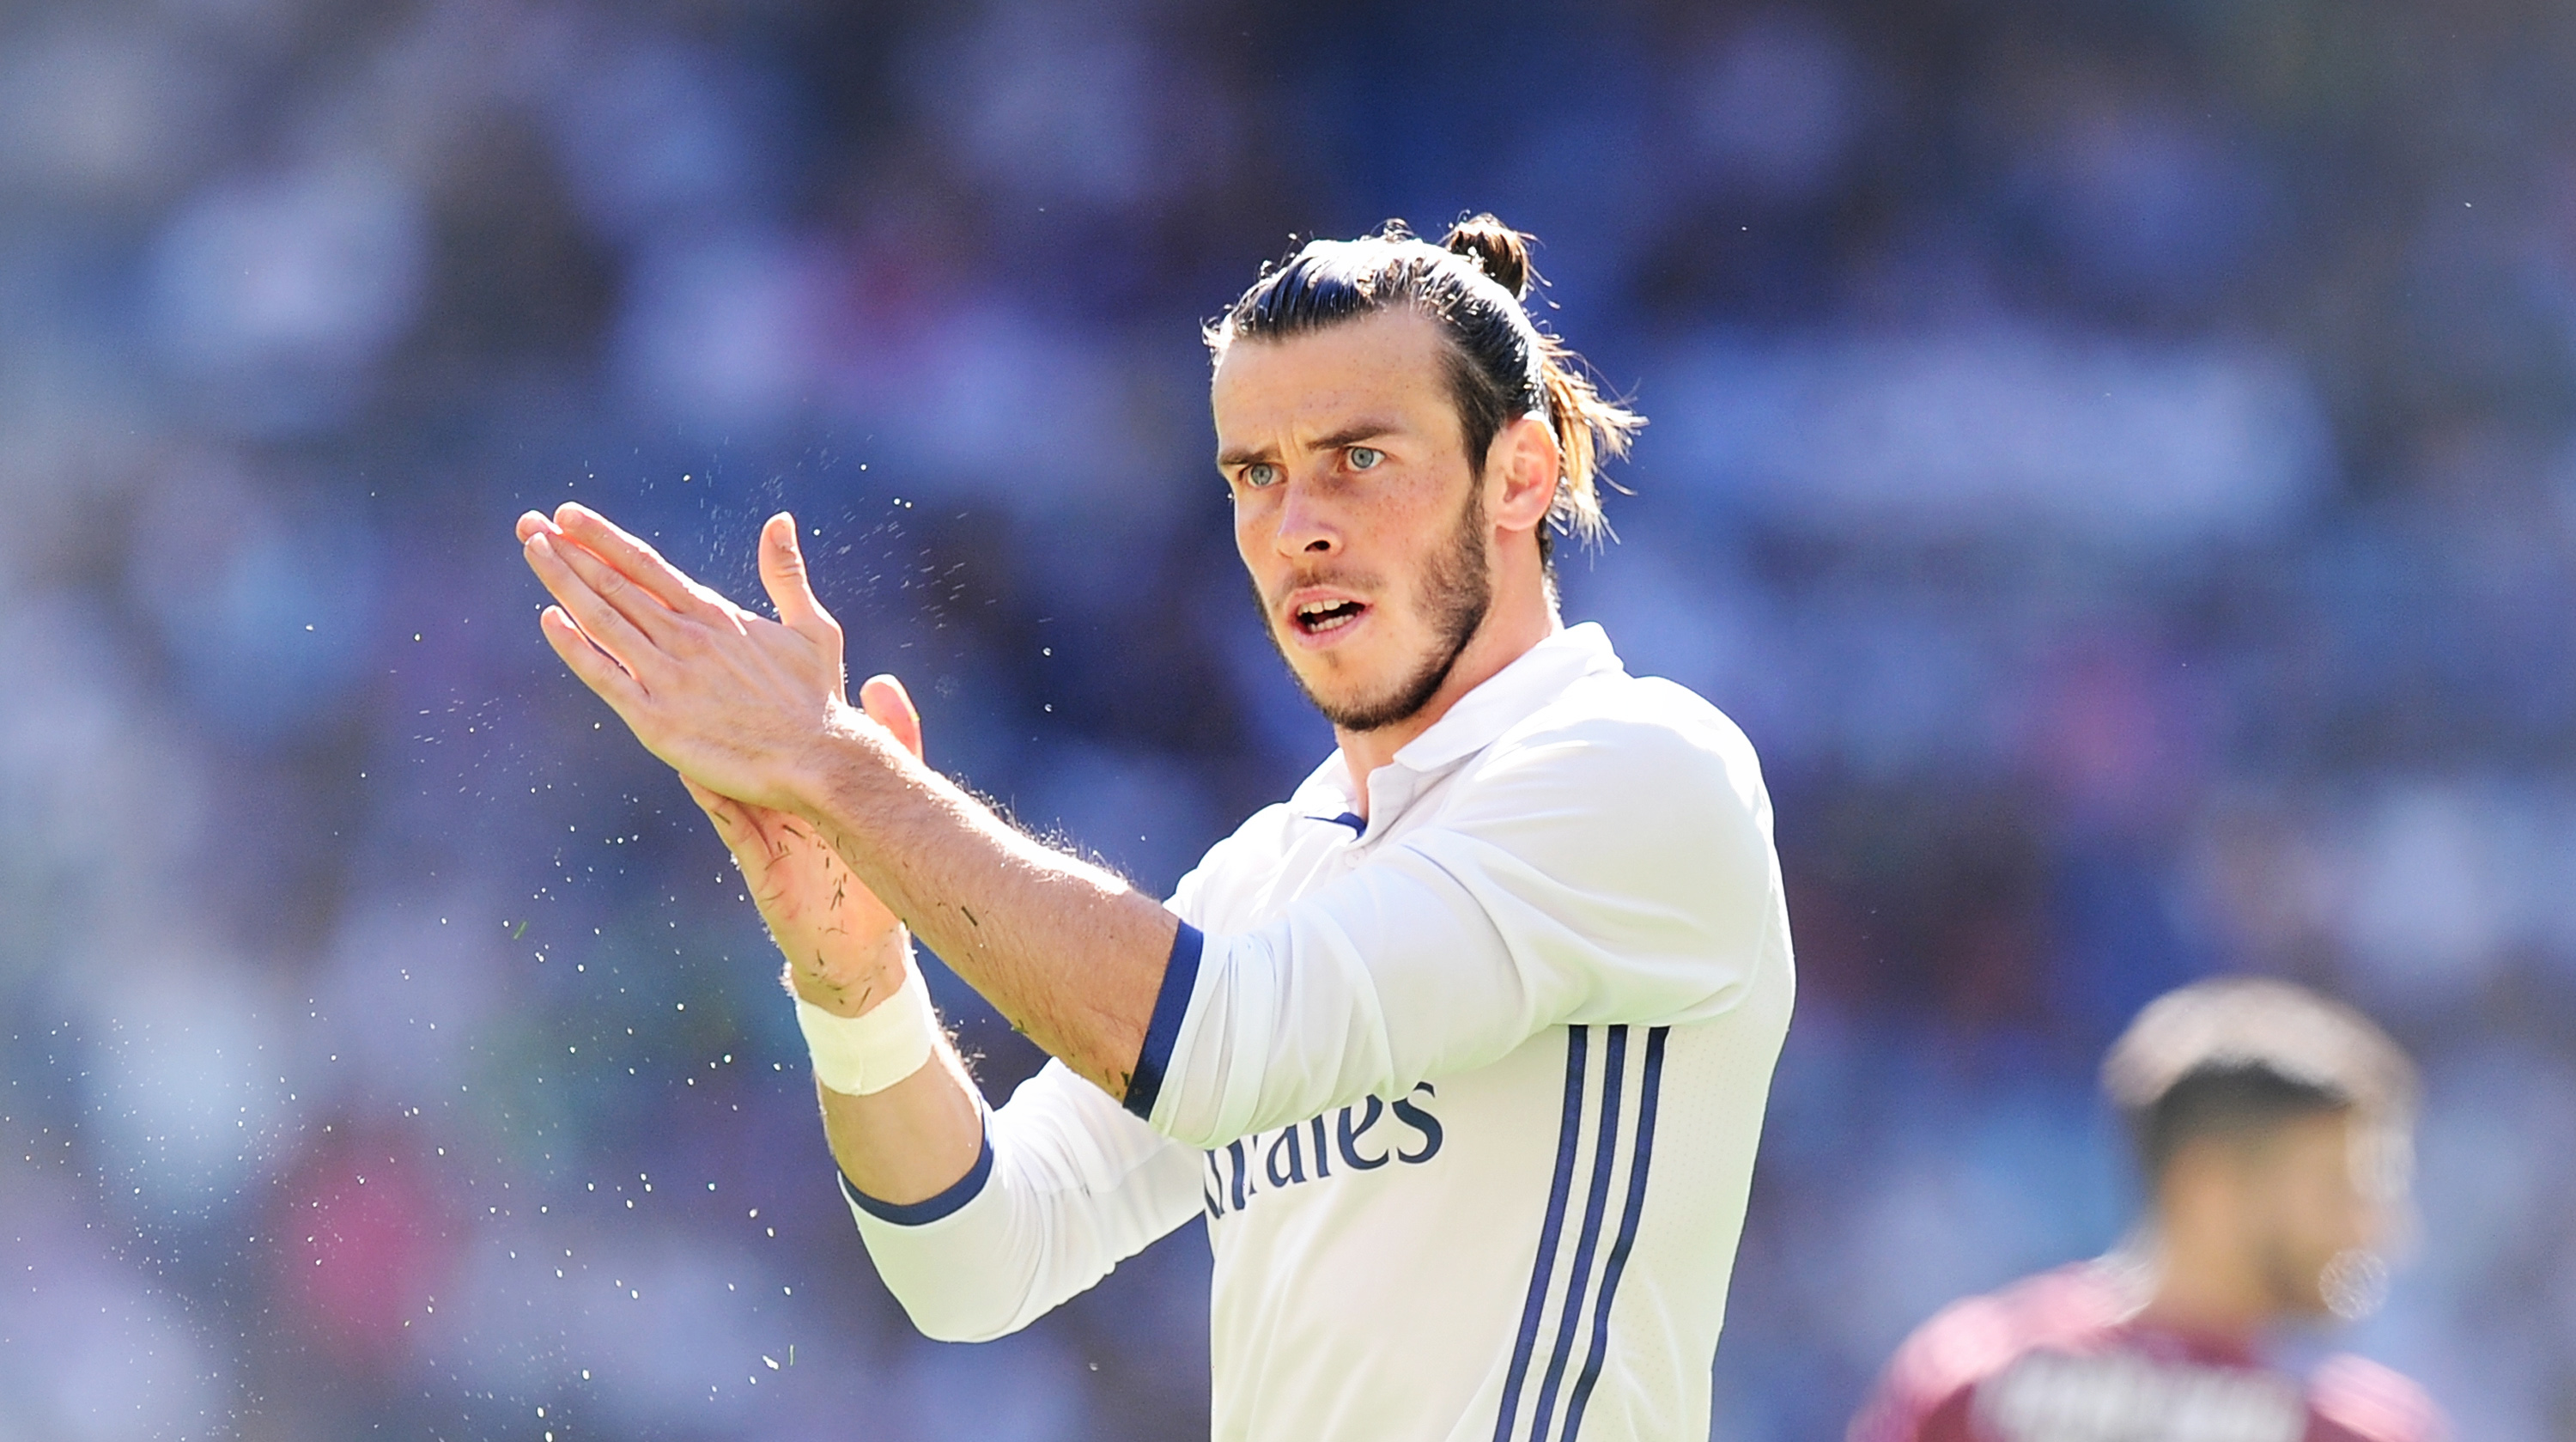 Gareth Bale ends season on good note, celebrates title at home